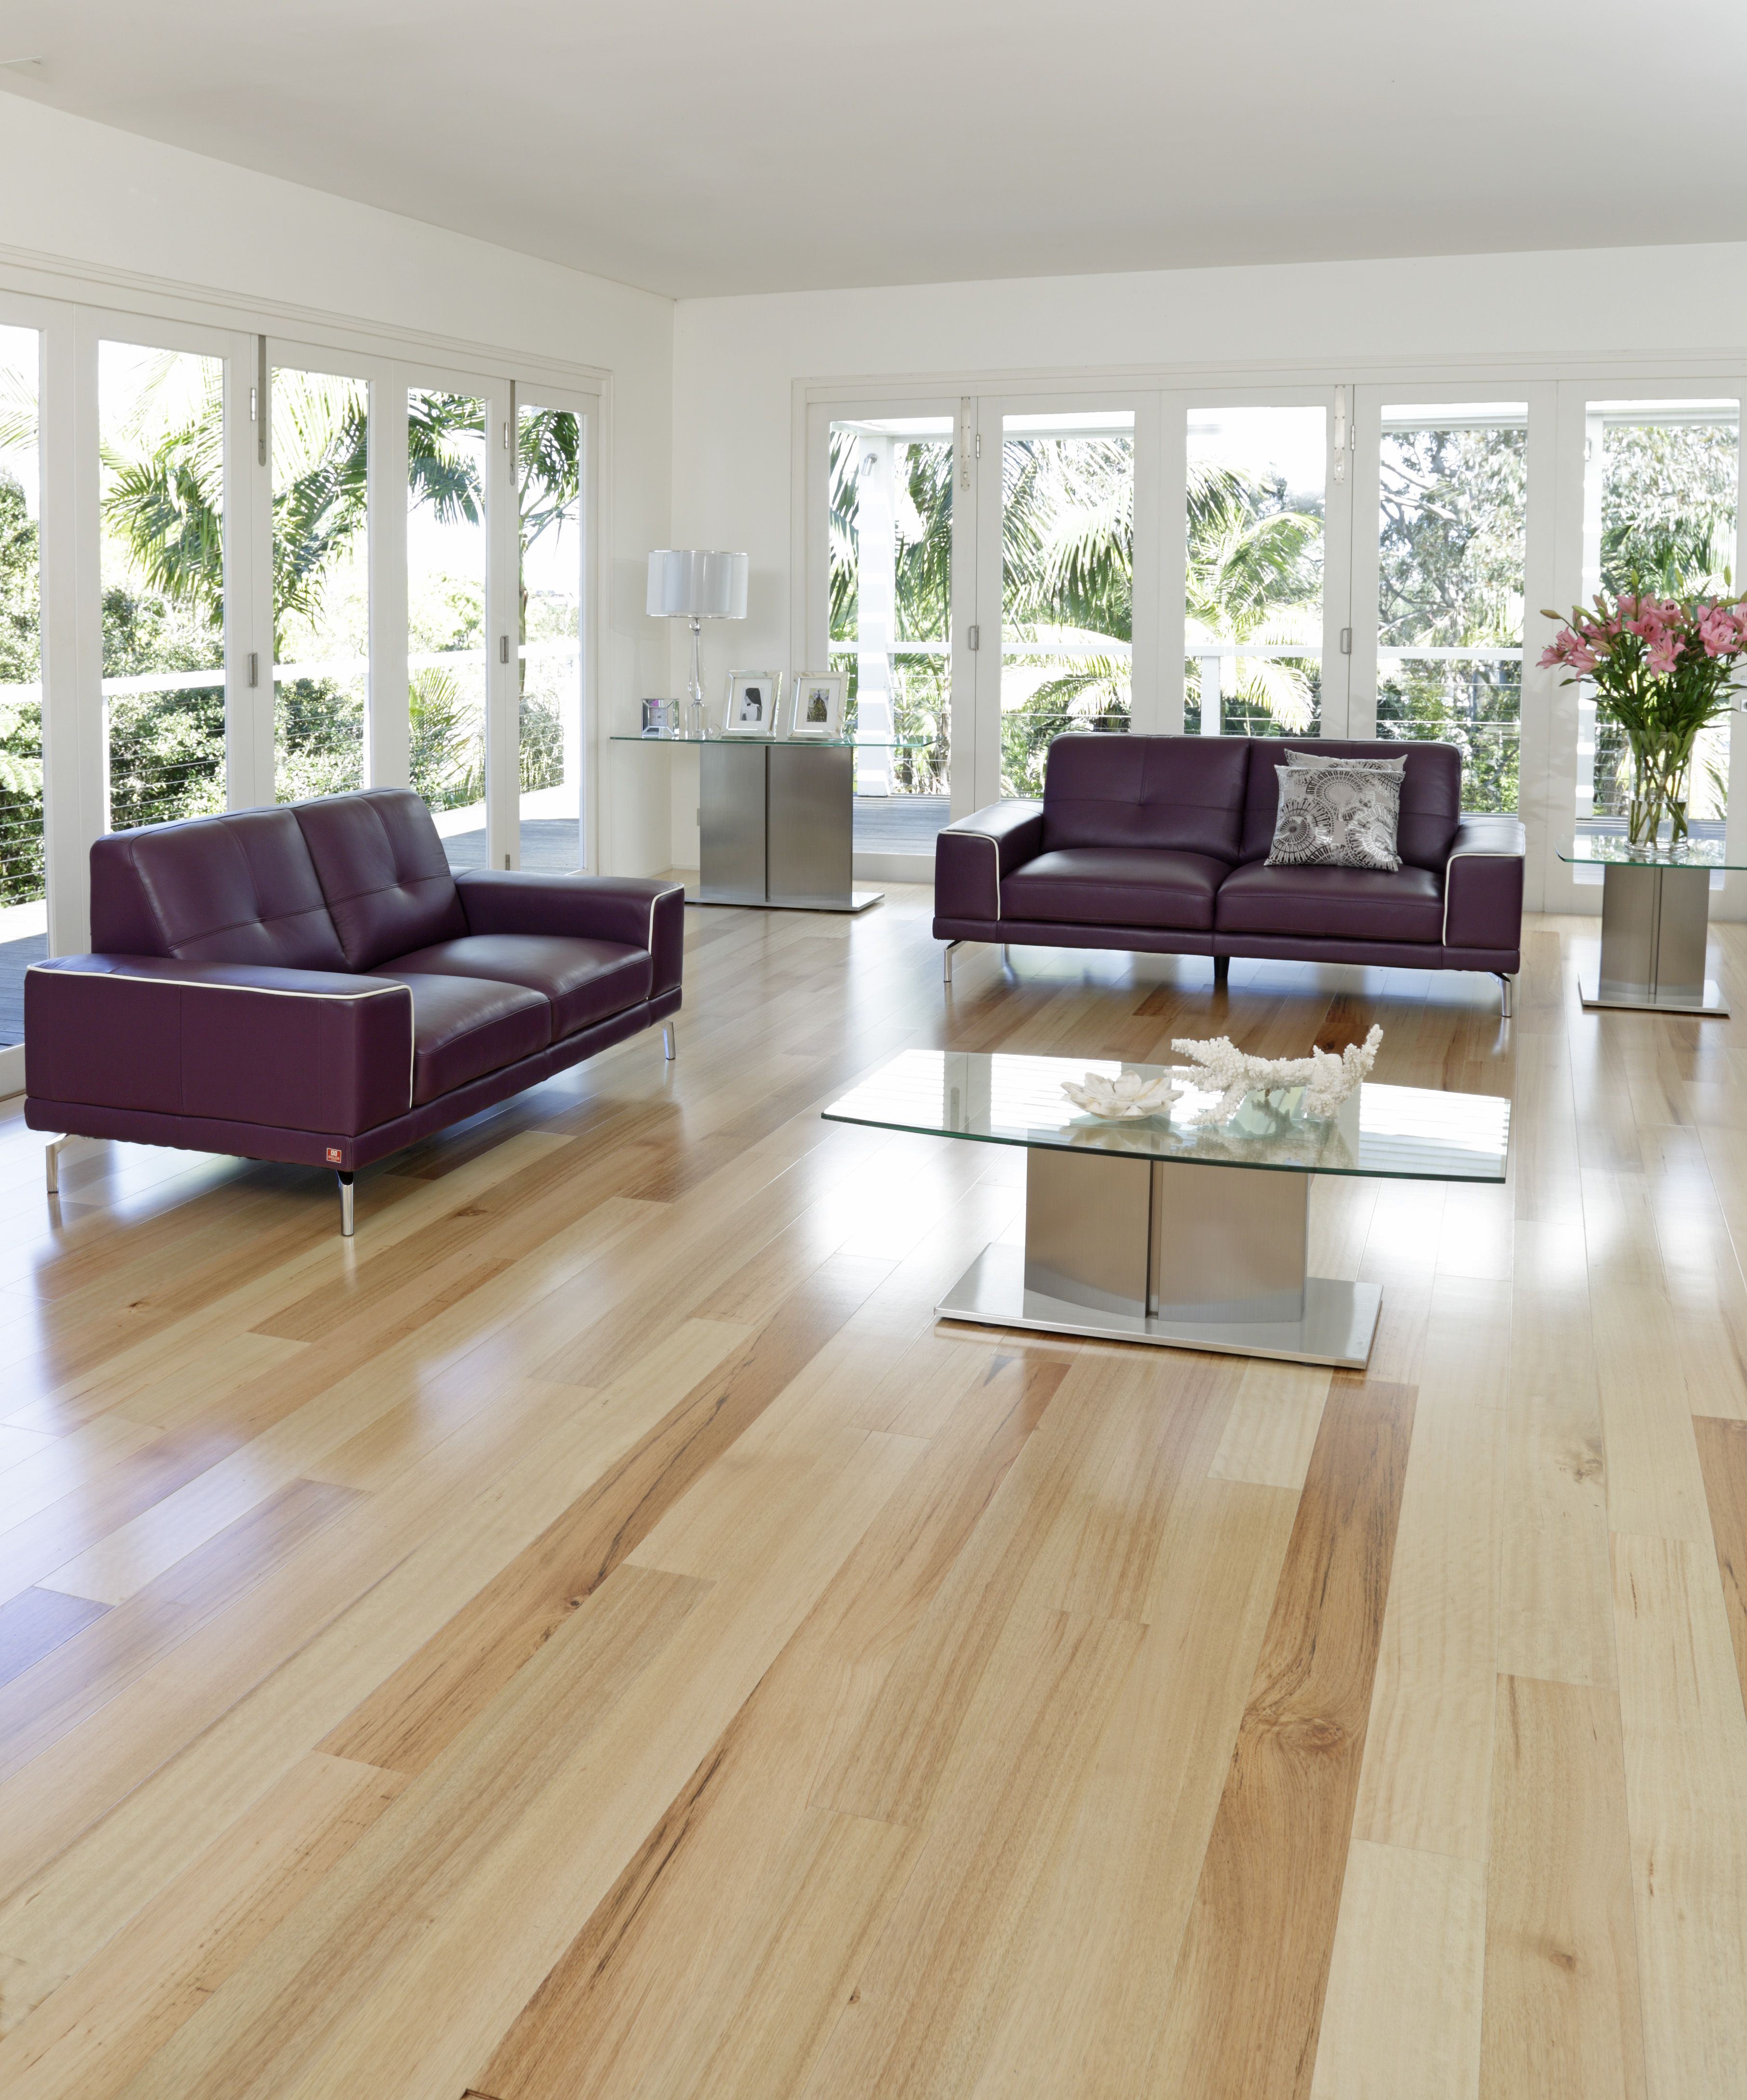 Timbermax Hardwood Flooring Tasmanian Oak Love This Flooring So Light And Bright Light Oak Floors Living Room Wood Floor Light Wood Floors #oak #floor #living #room